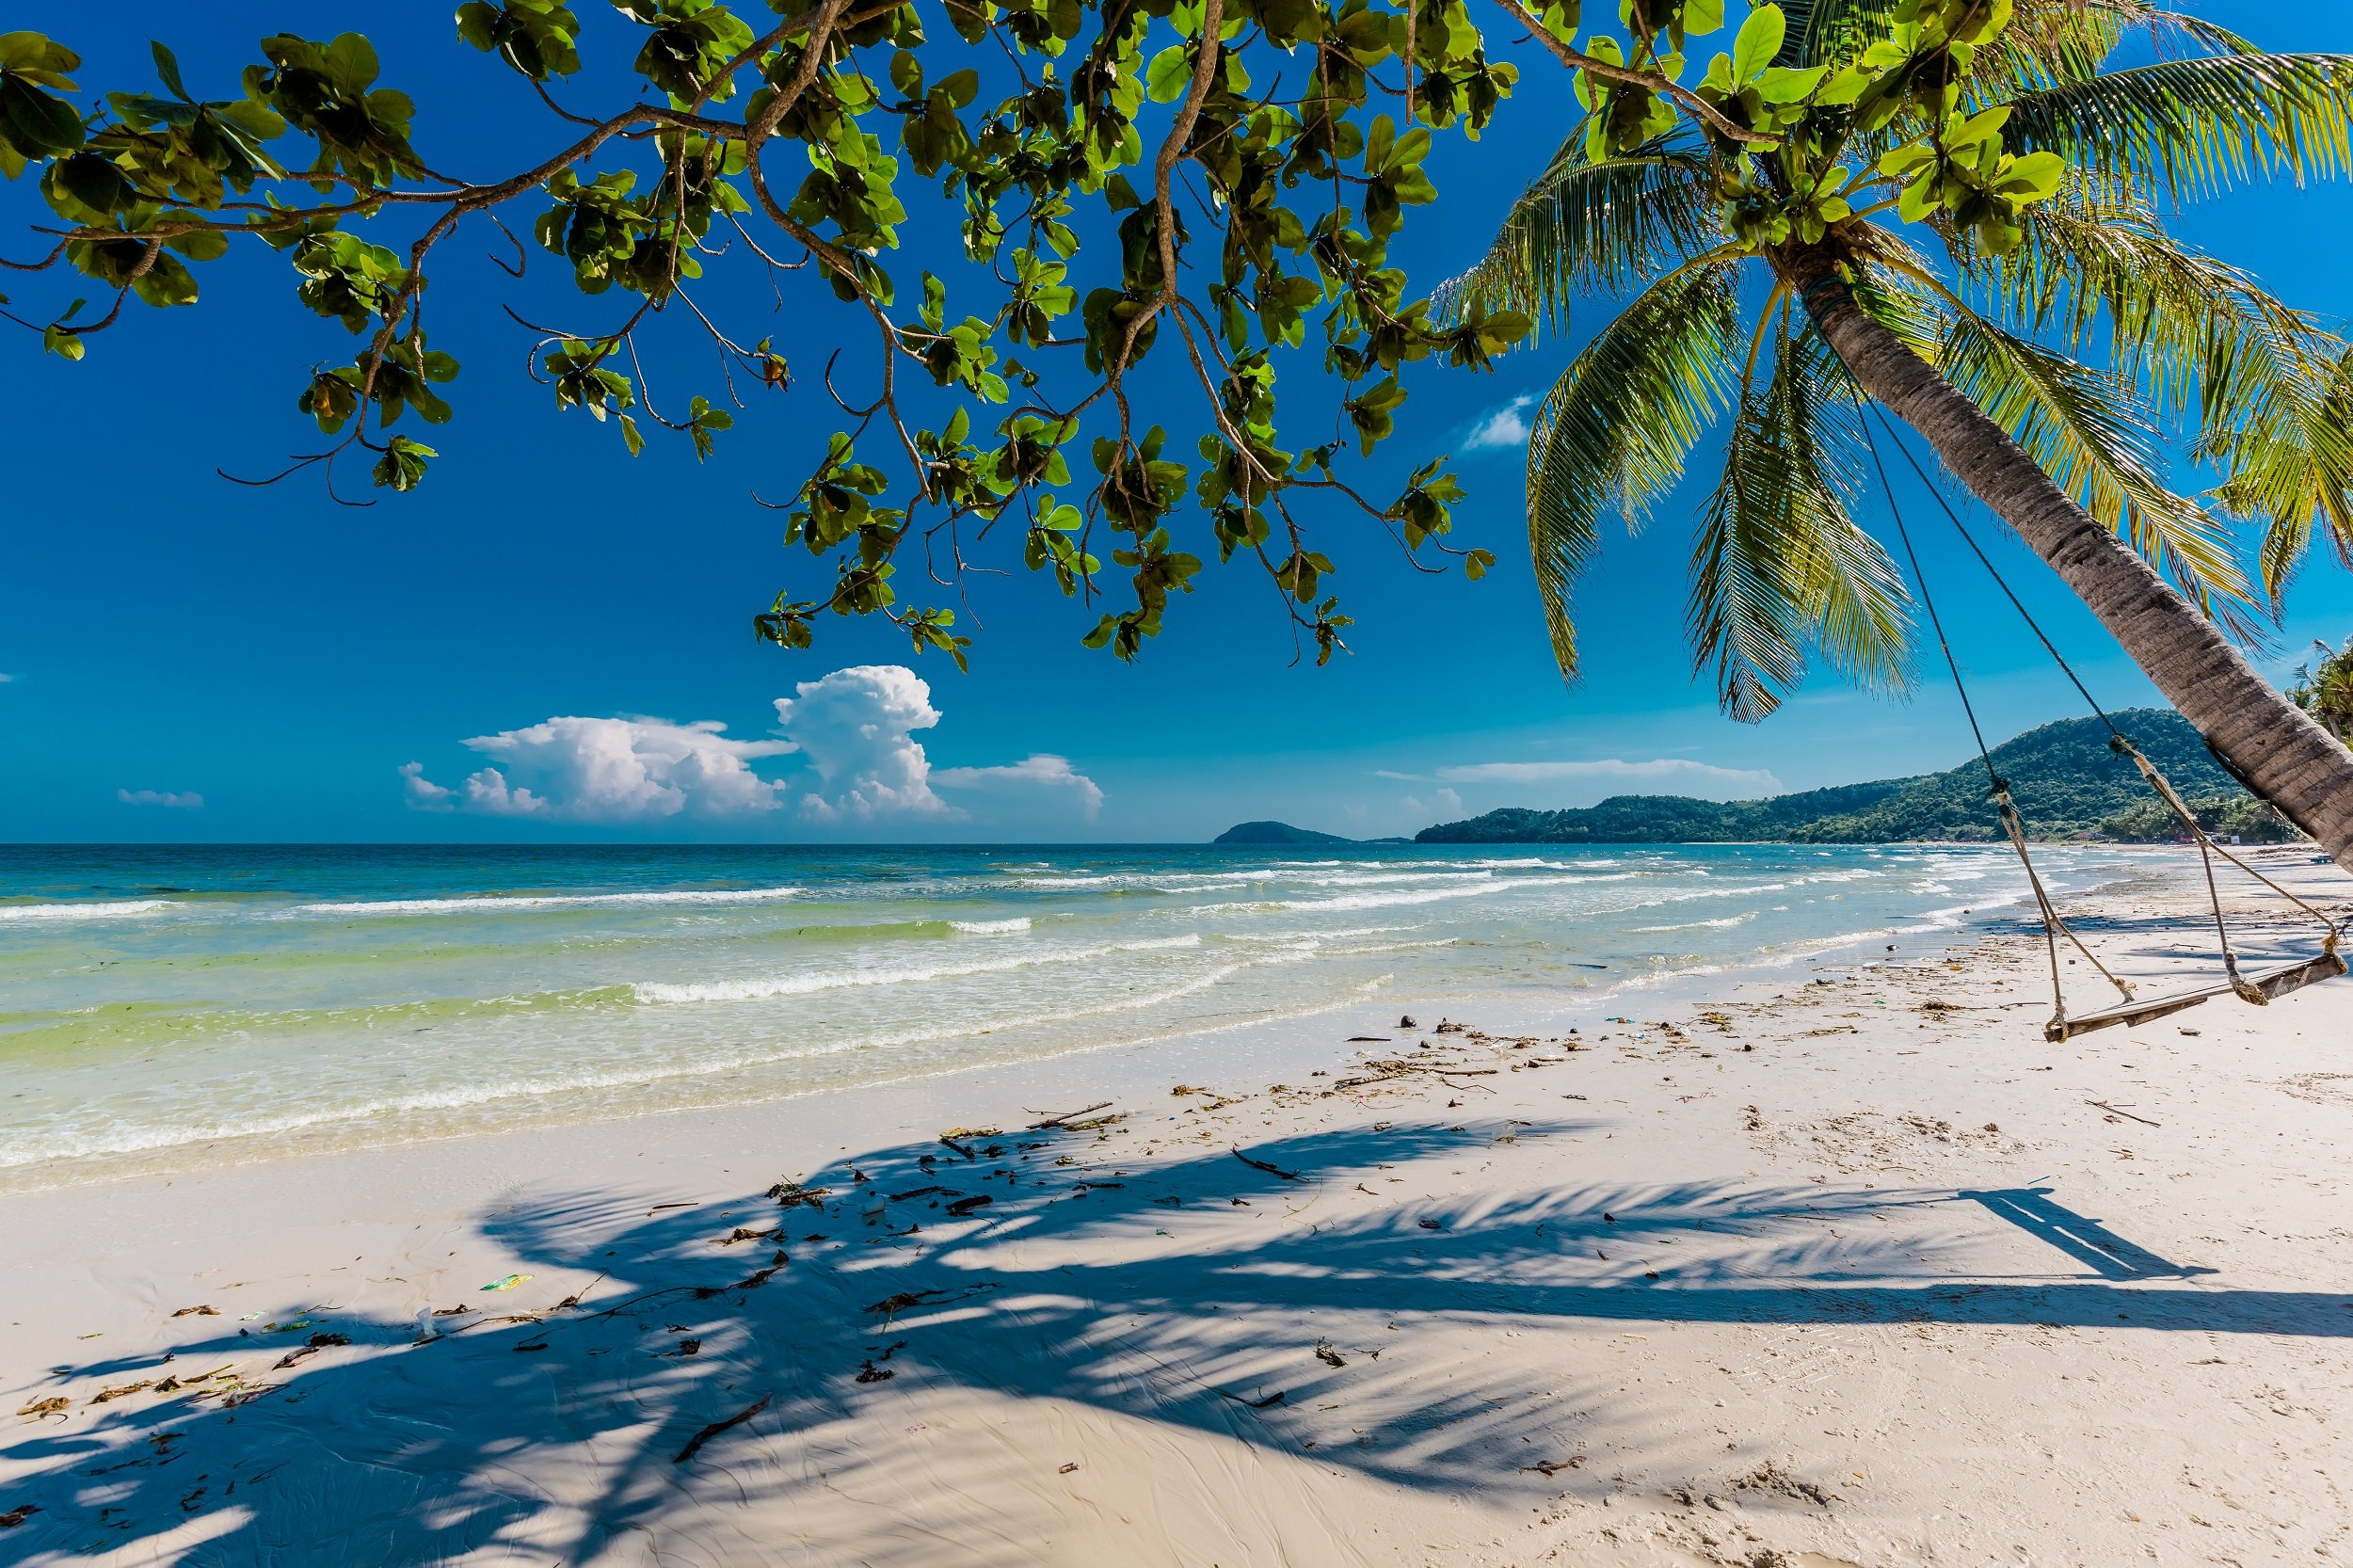 Enjoy The Beautiful Beaches Of Phu Quoc On The 15 Day Vietnam Wellbeing & Yoga Package Tour (2)